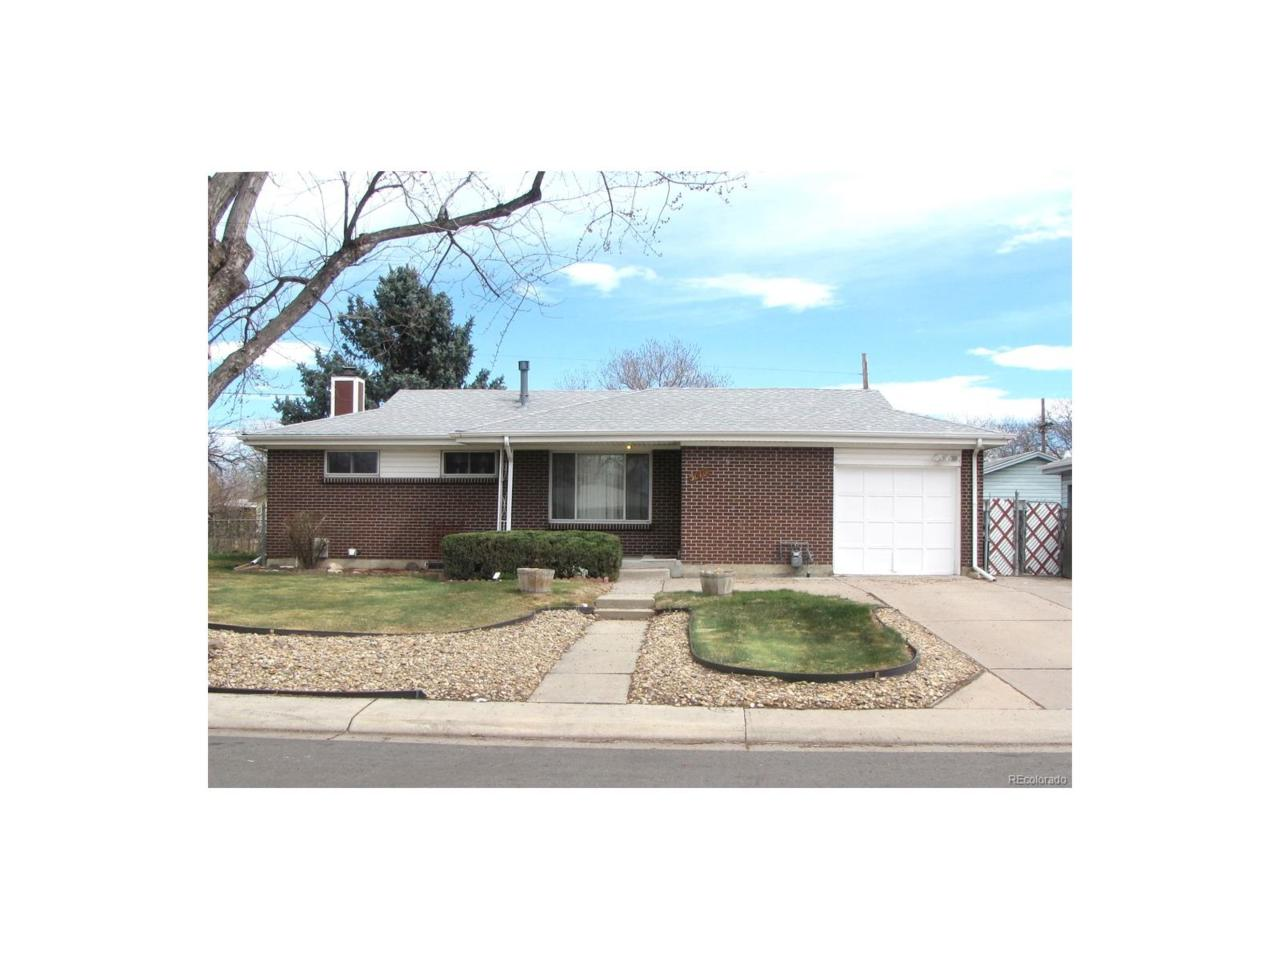 3010 Atchison Street, Aurora, CO 80011 (MLS #3141875) :: 8z Real Estate